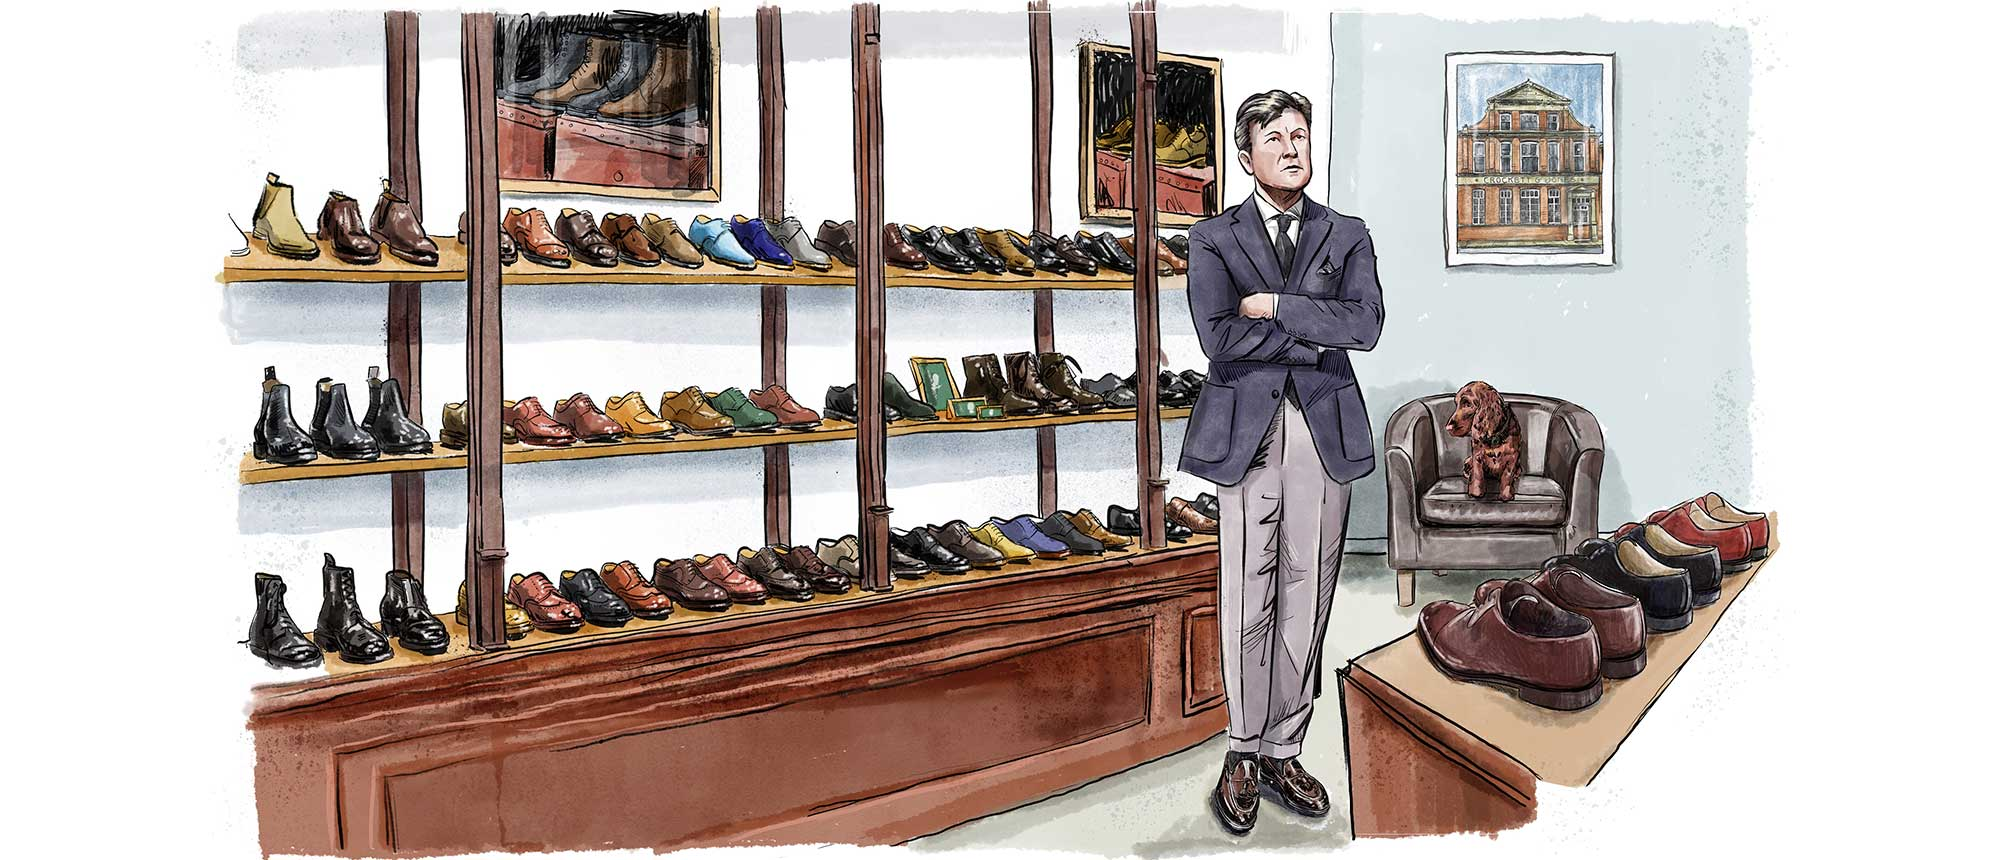 Crockett & Jones - The next investment...